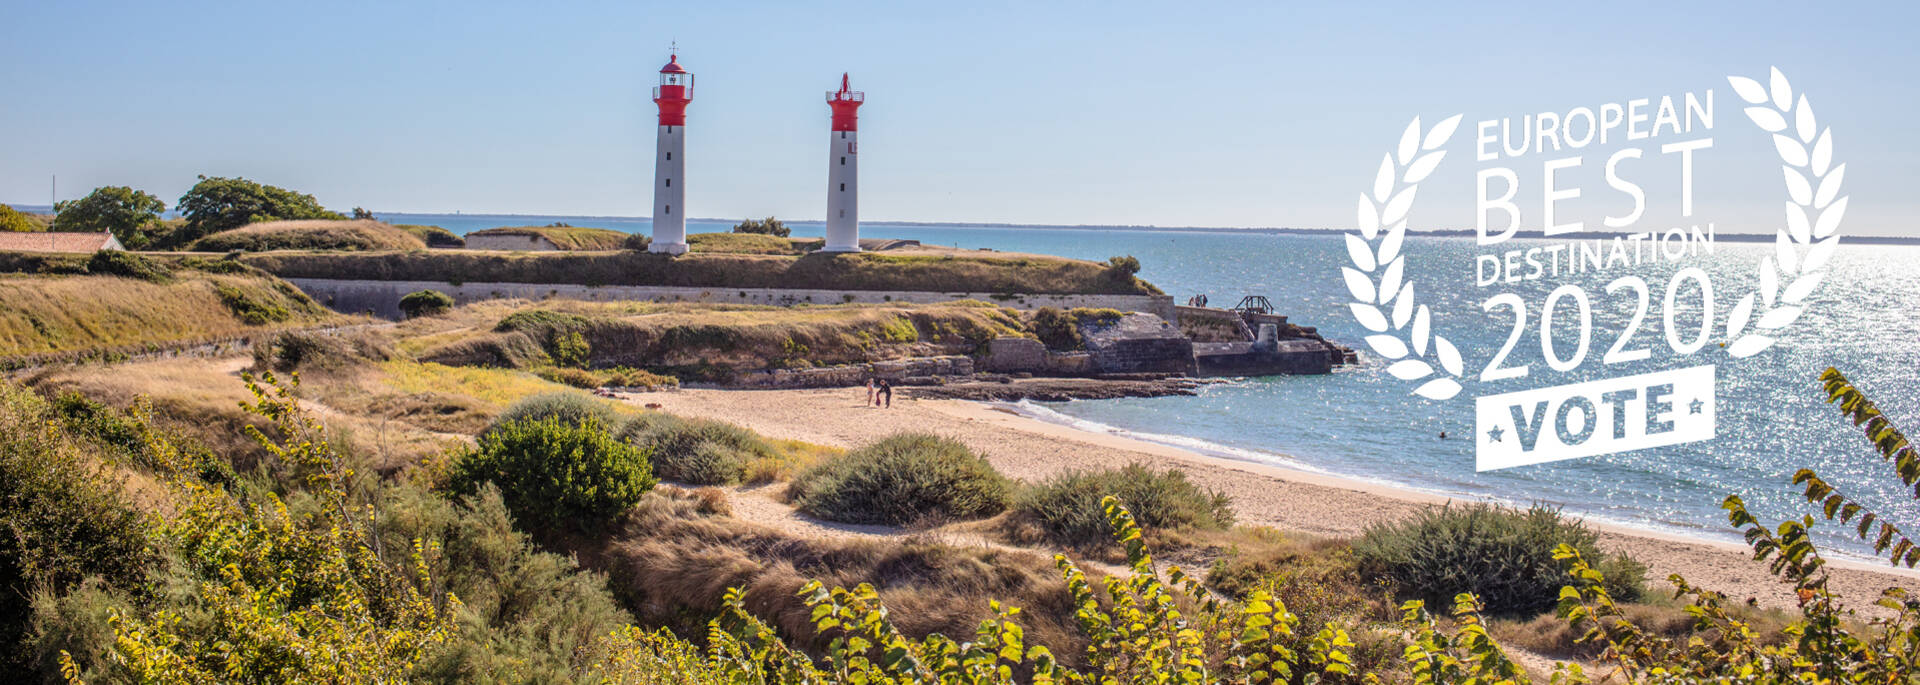 The lighthouses of Aix Island ©Images et Emotion